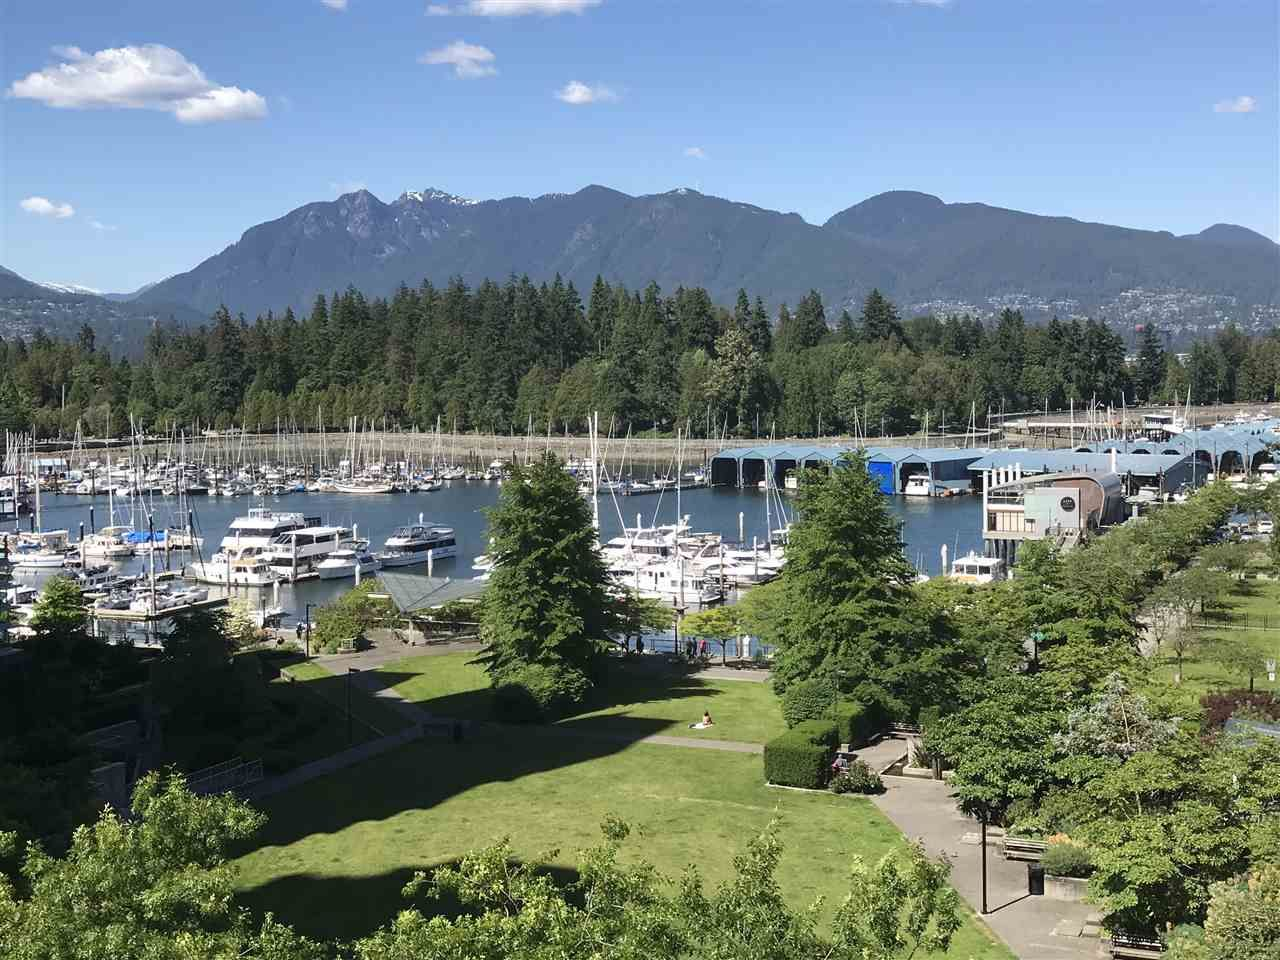 Main Photo: 603 1680 BAYSHORE DRIVE in Vancouver: Coal Harbour Condo for sale (Vancouver West)  : MLS®# R2294621